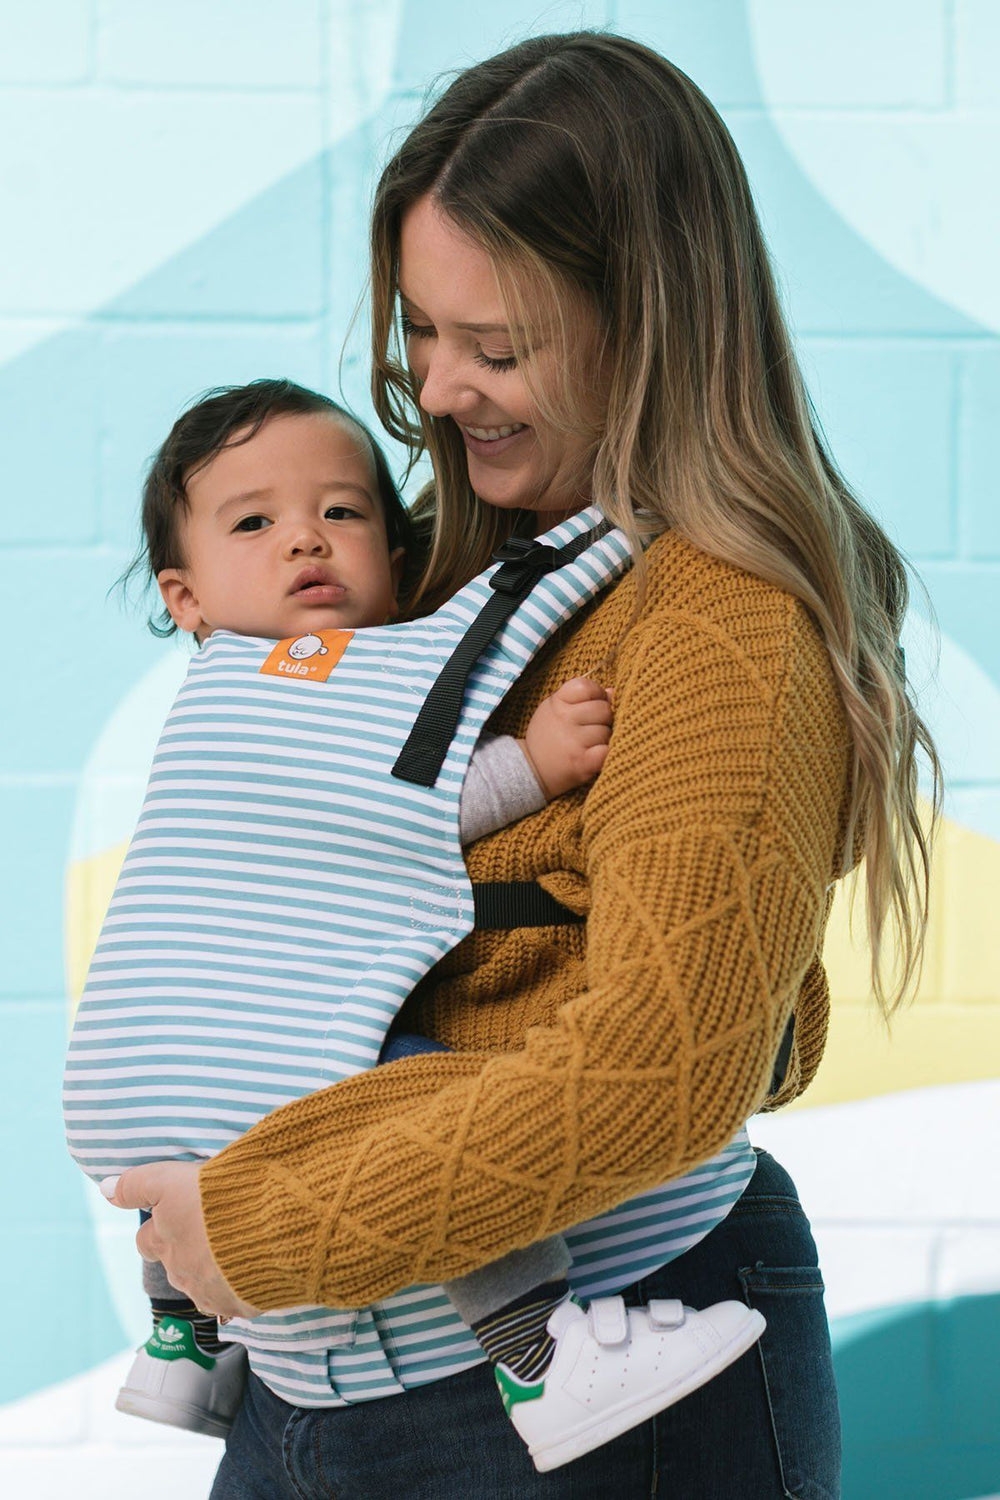 Ergonomic and Multiple Positions for 7-45 pounds Seaside Baby Tula Free-to-Grow Baby Carrier Adjustable Newborn to Toddler Carrier